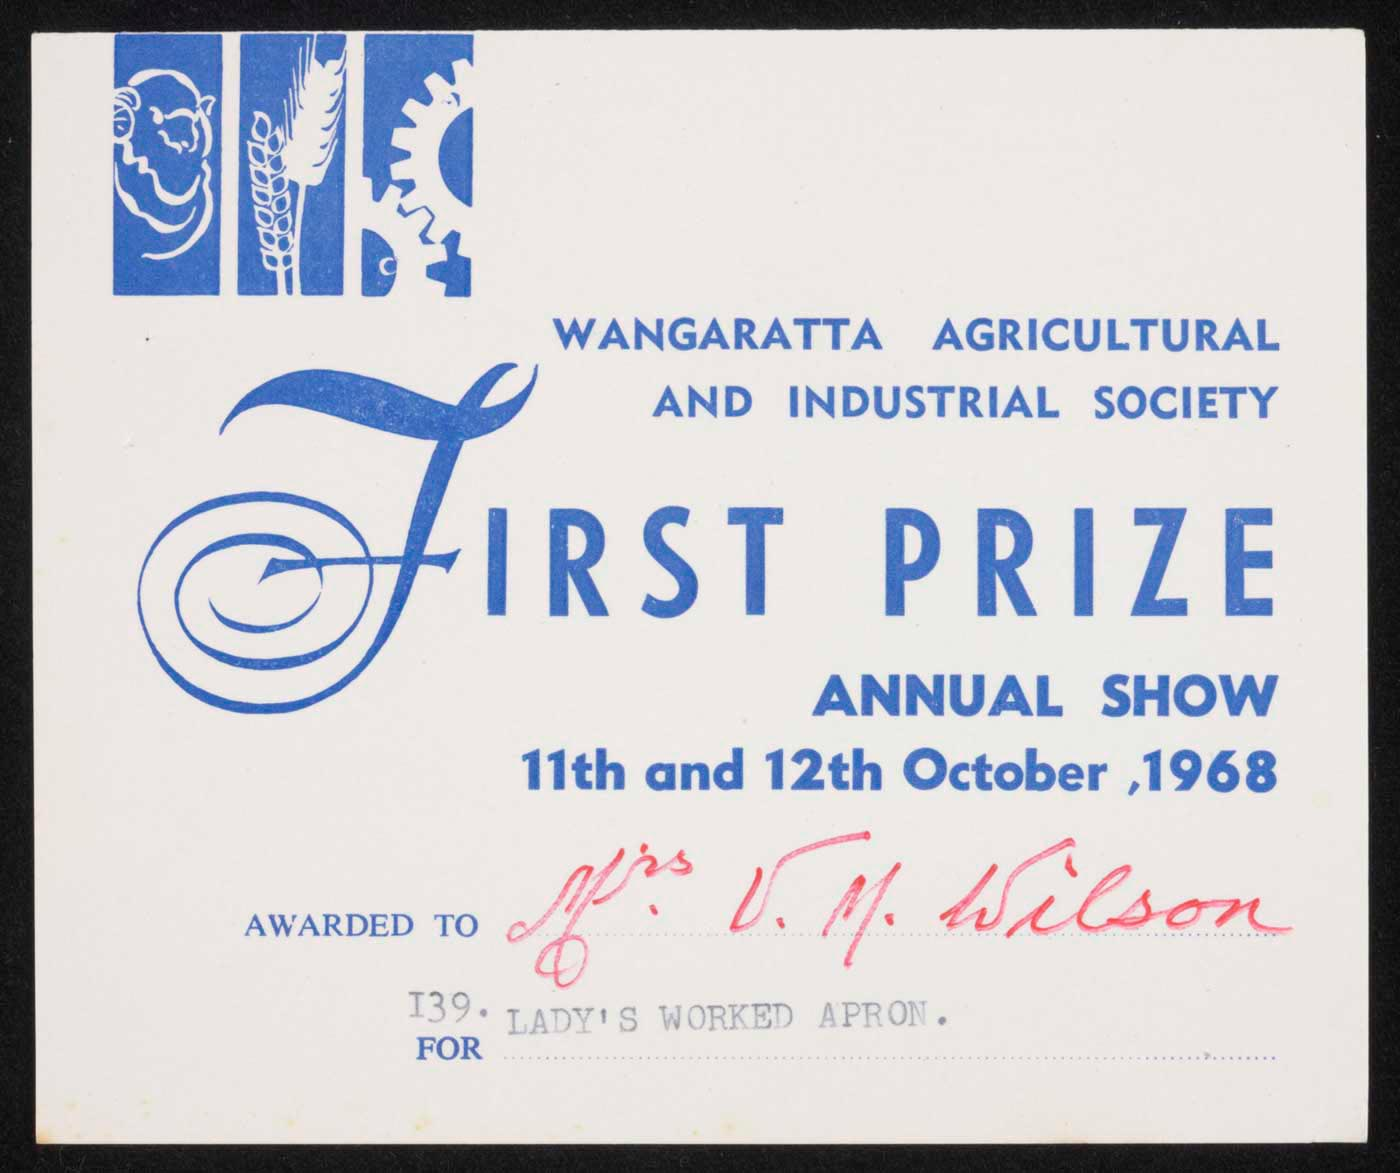 Wangaratta show first prize certificate. - click to view larger image